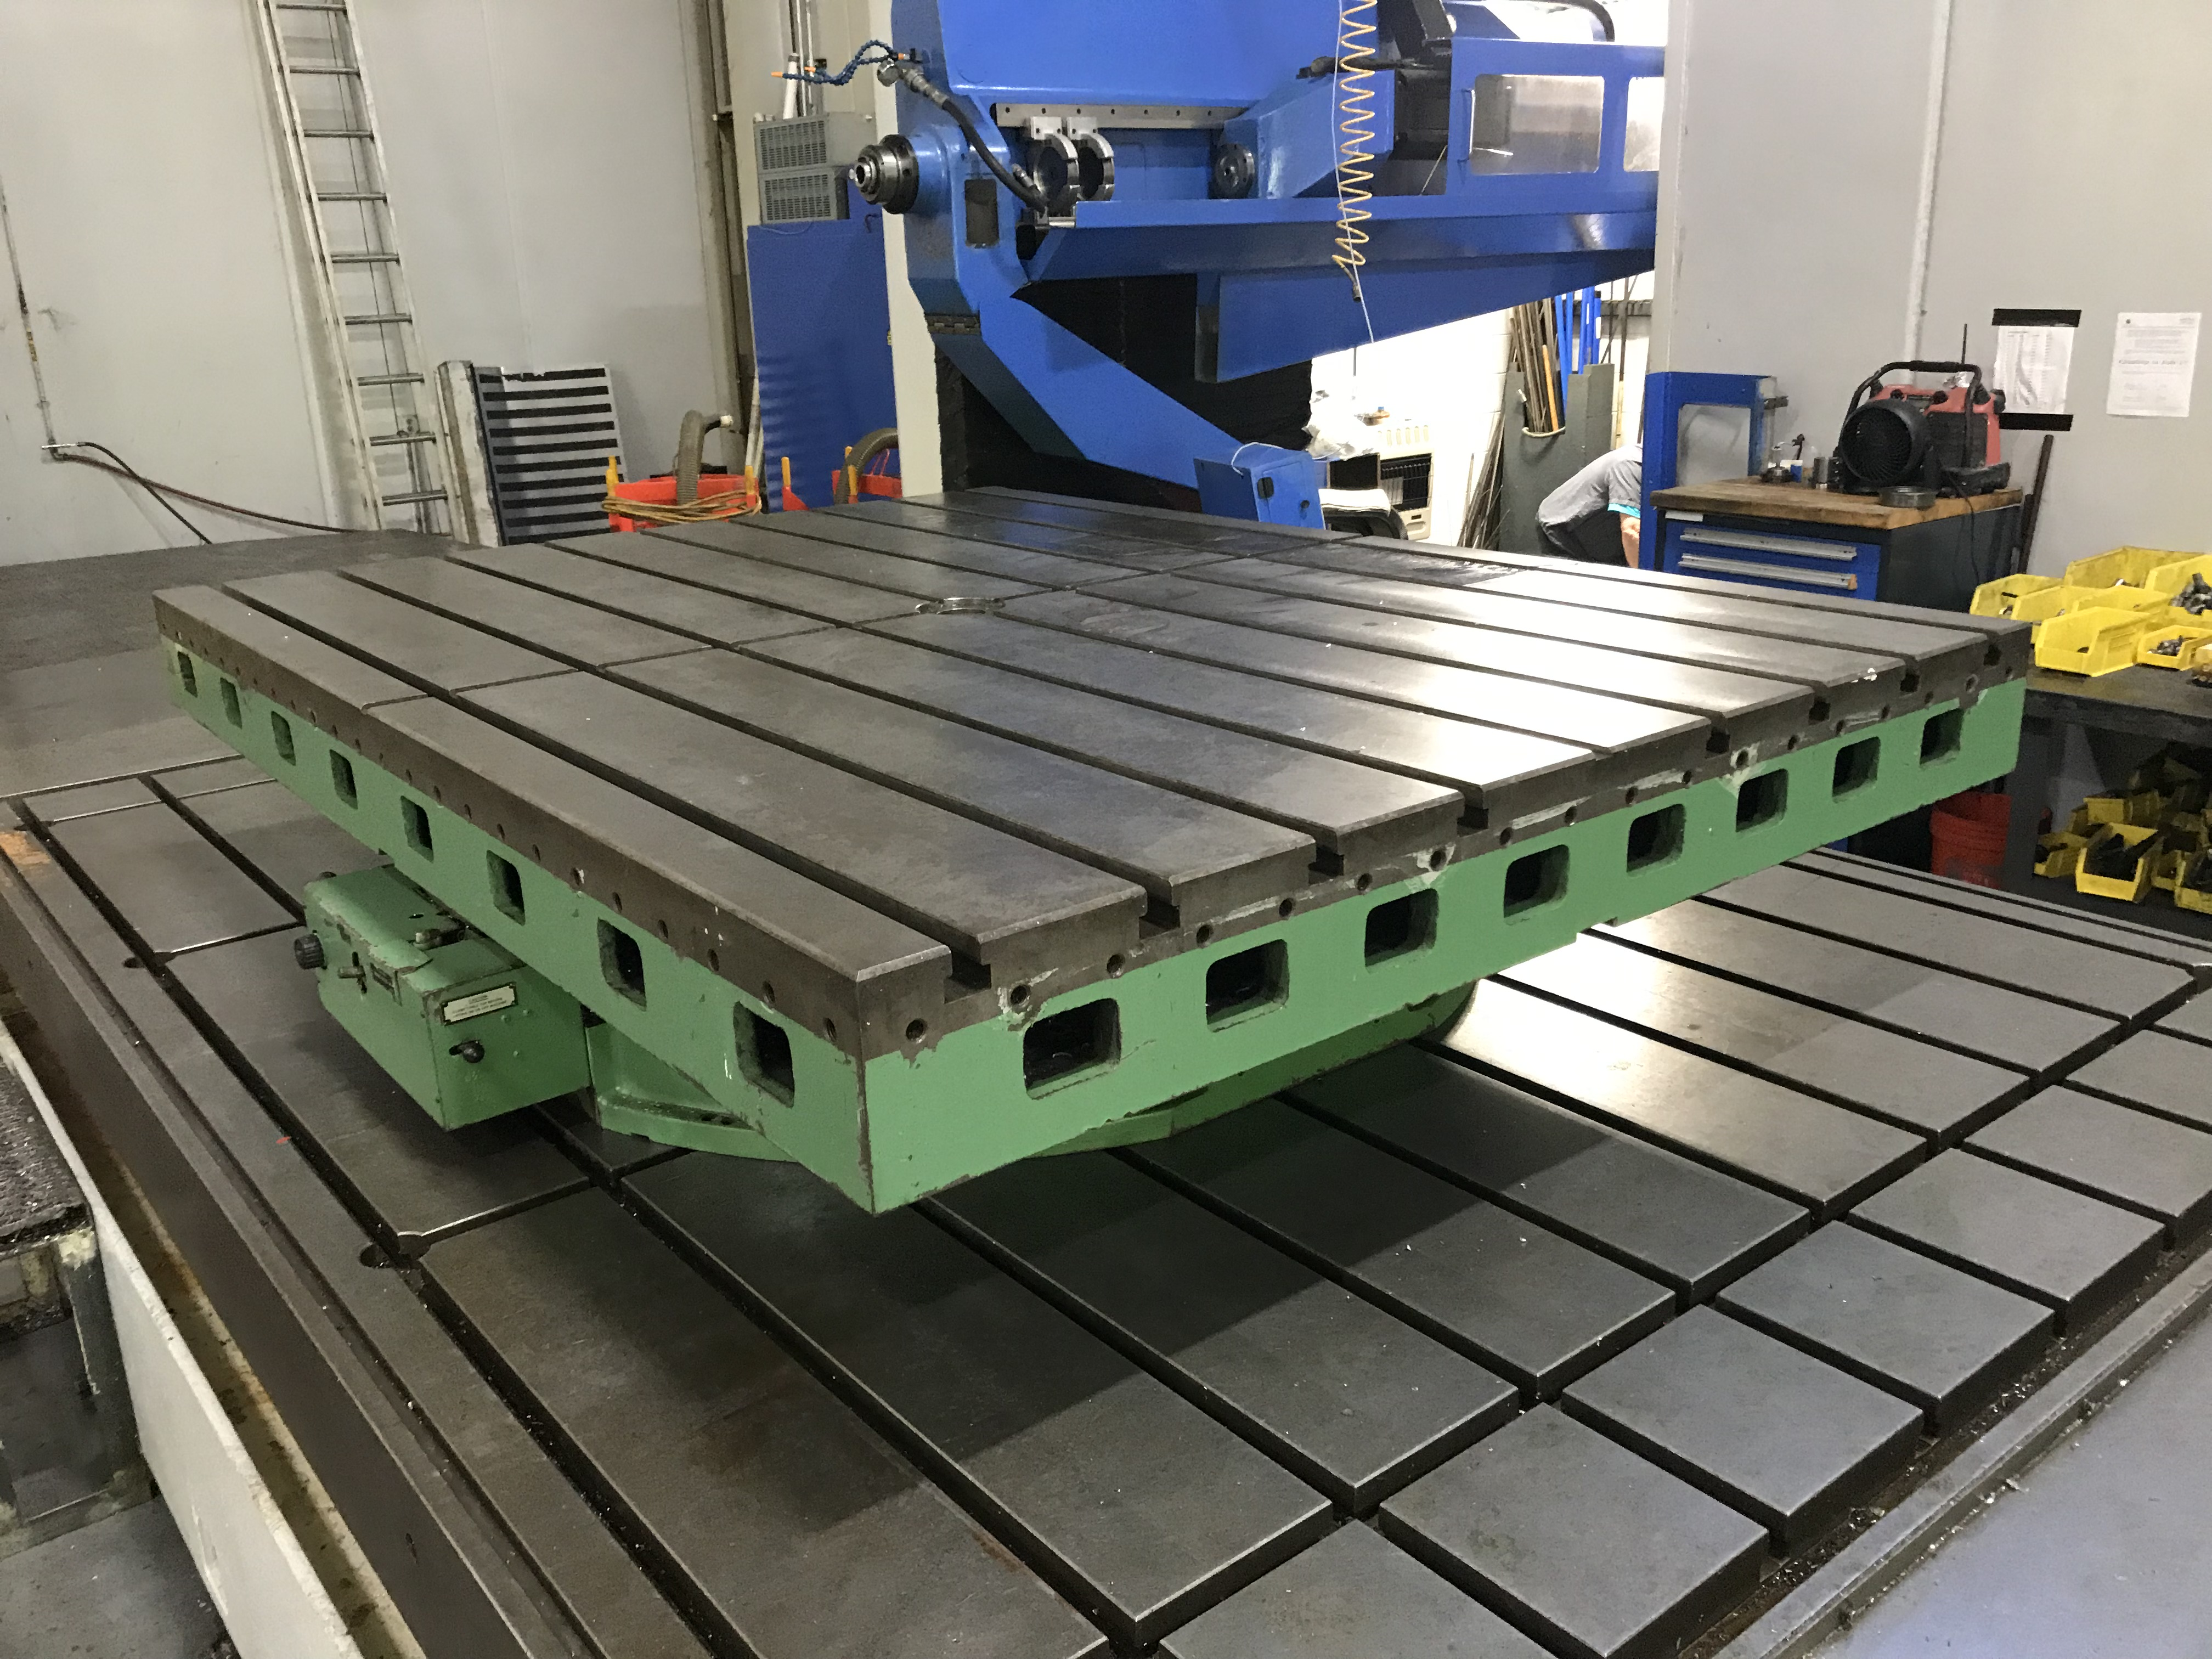 """Cincinnati Gilbert Air Lift Rotary Table, 20,000 LB Cap, 72"""" x 96"""", T-Slotted, 360 Degree Scale - Image 2 of 7"""